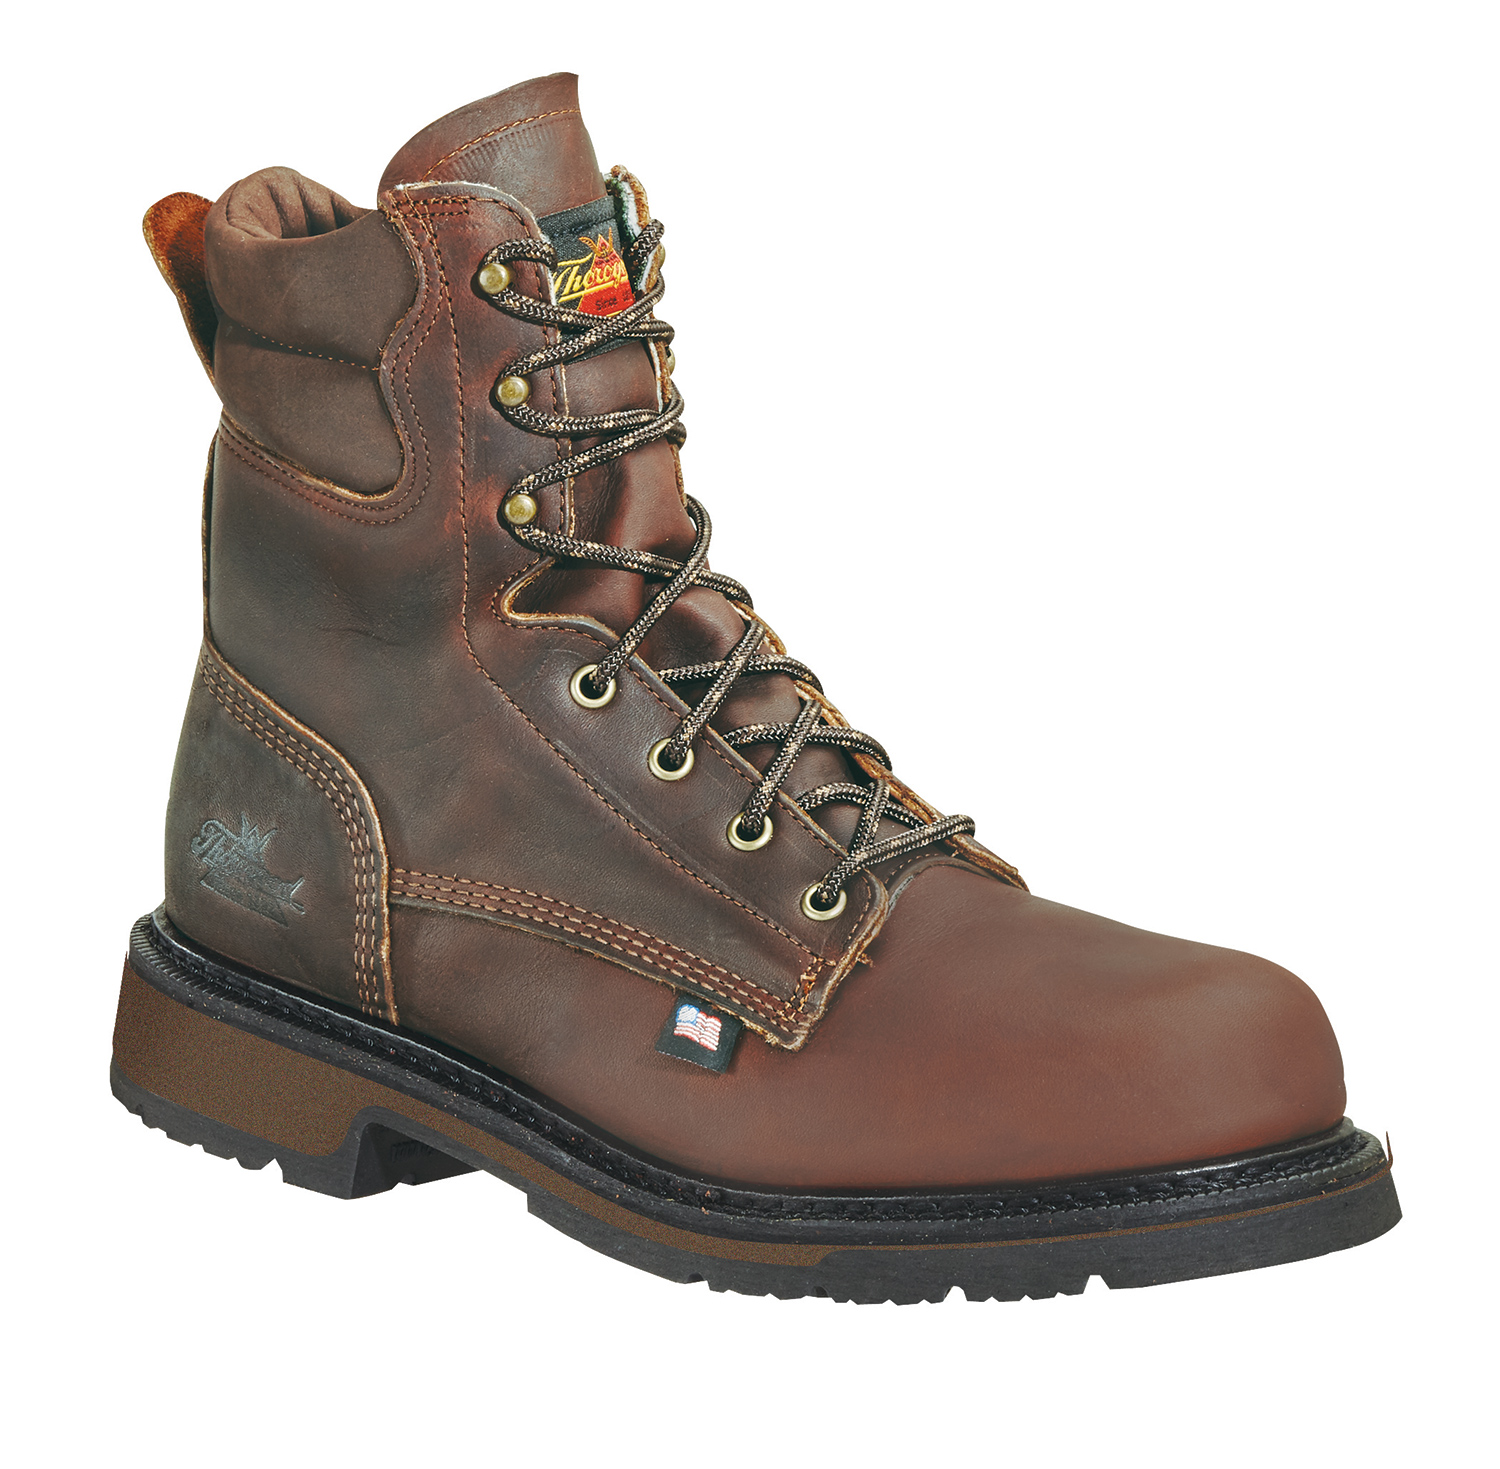 Most Comfortable Work Boots - Page 4 - Tools & Equipment ...